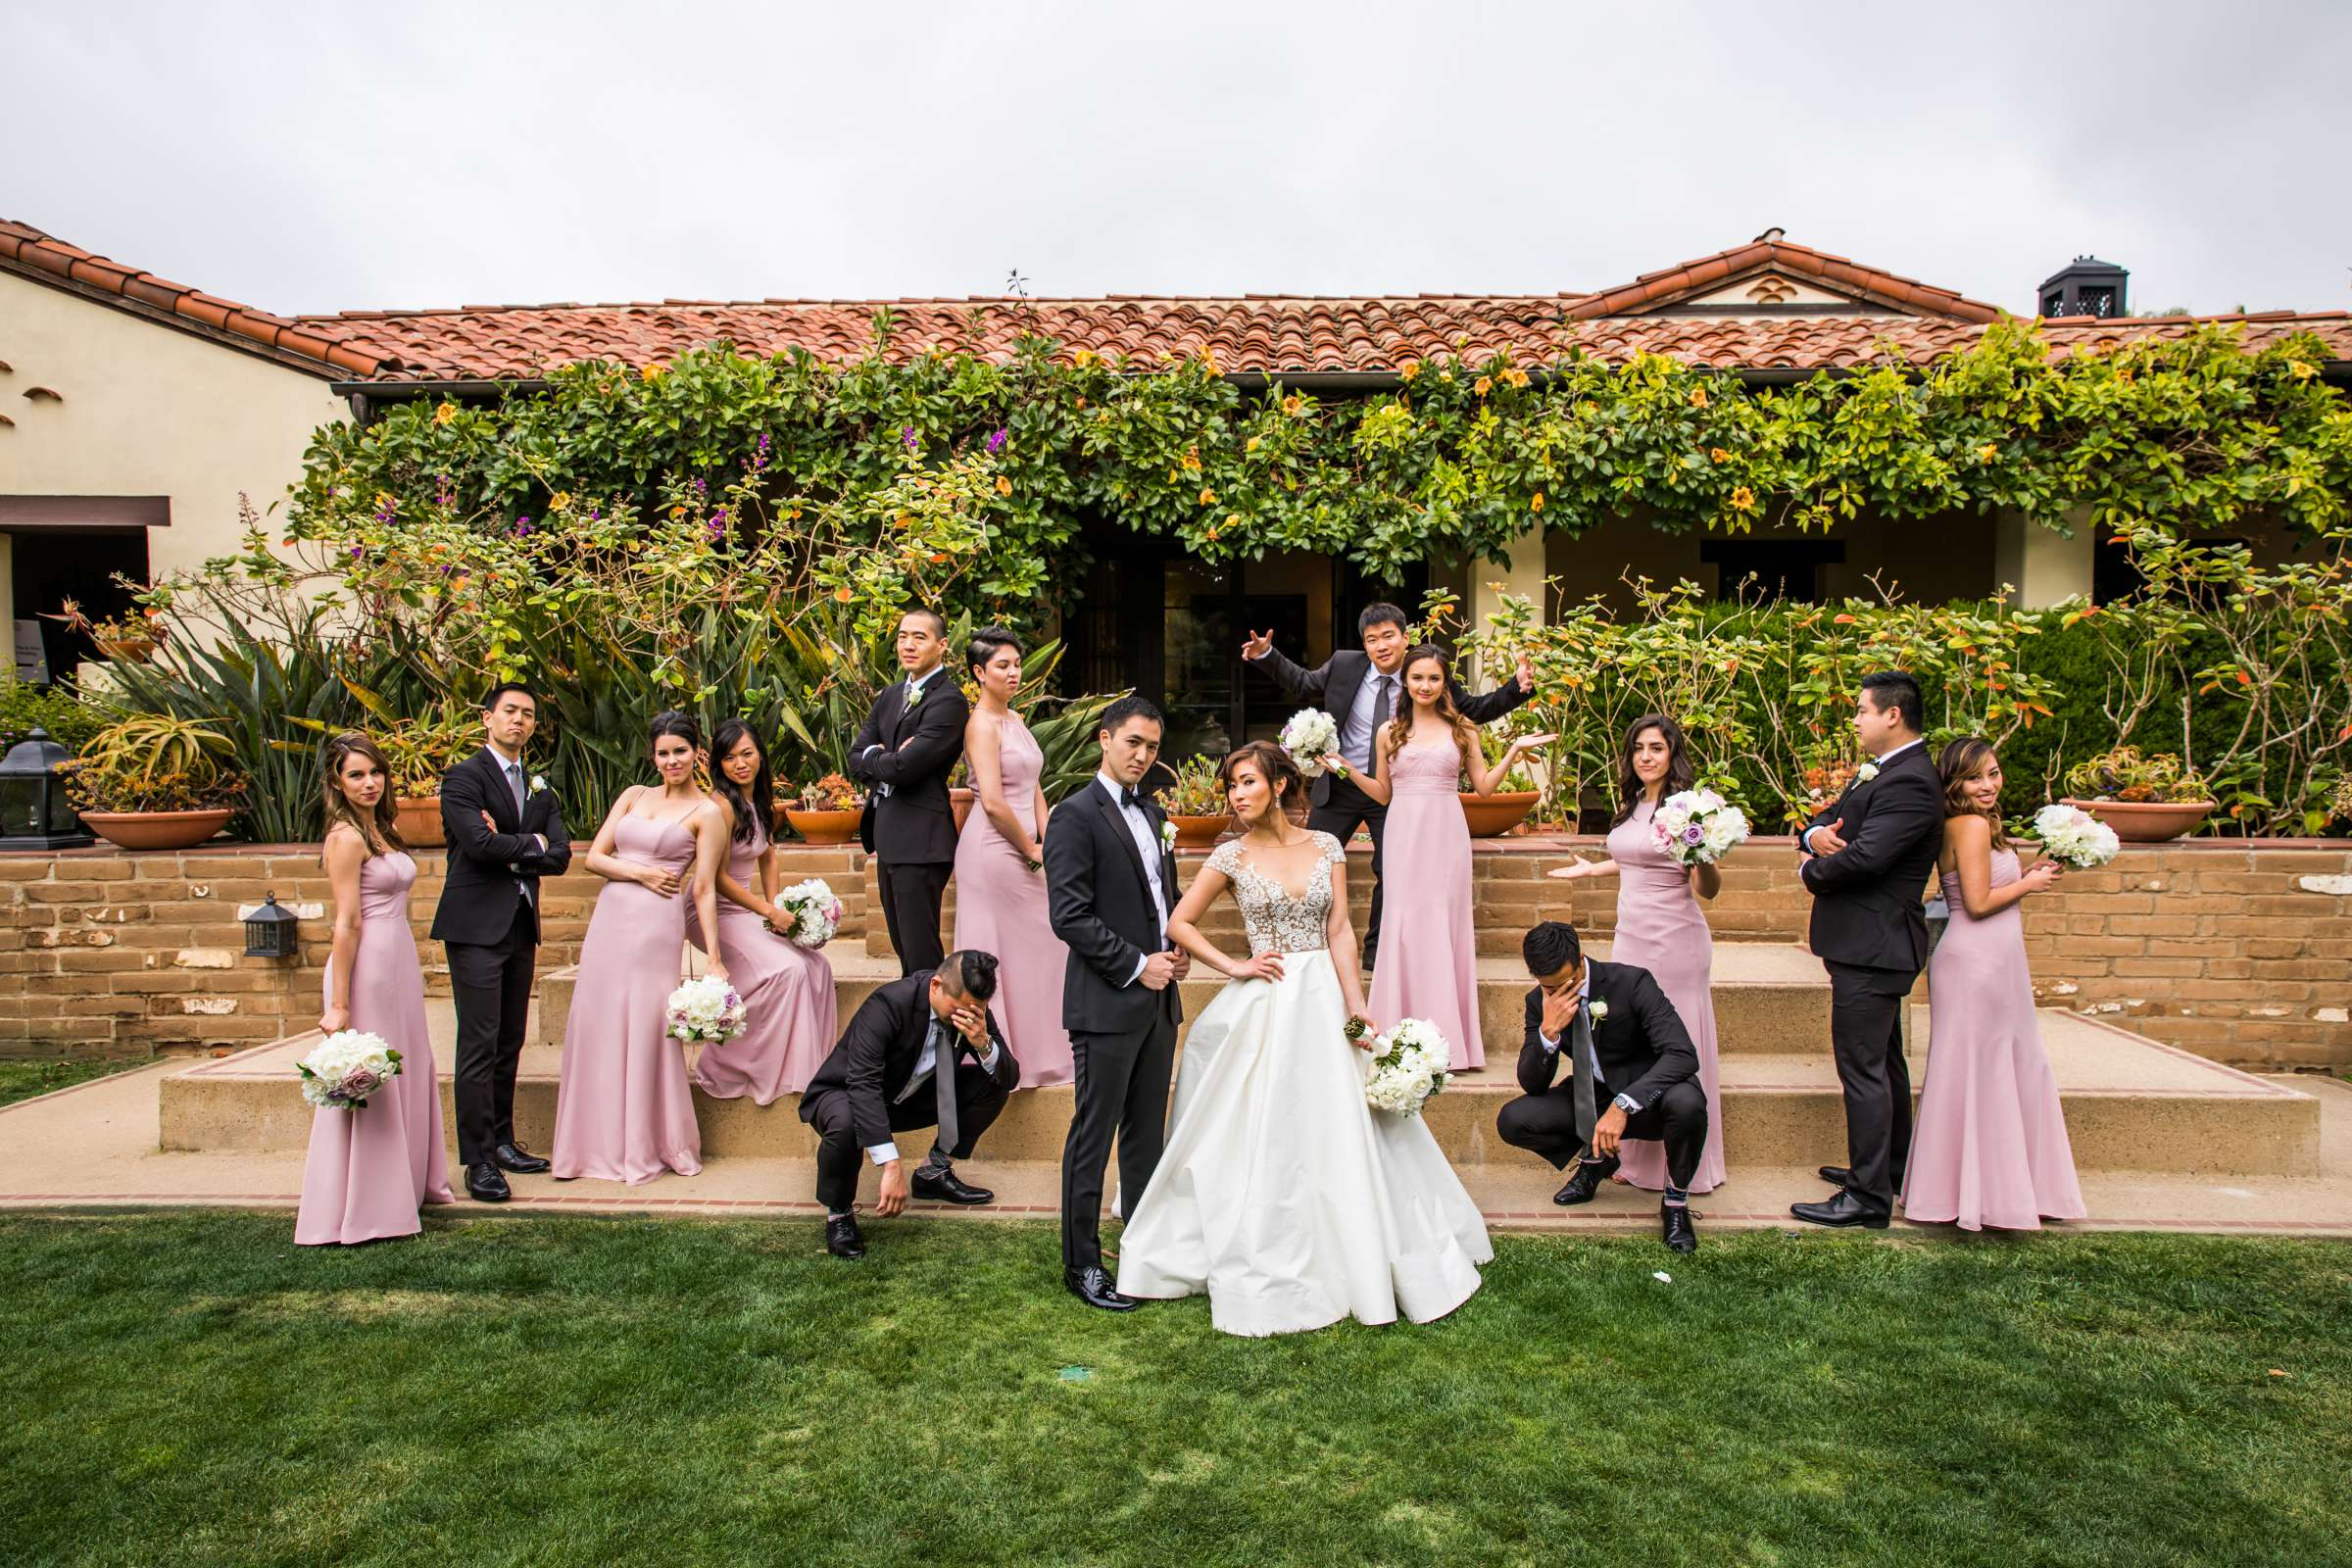 Estancia Wedding coordinated by Sweet Blossom Weddings, Allison and Alvin Wedding Photo #10 by True Photography